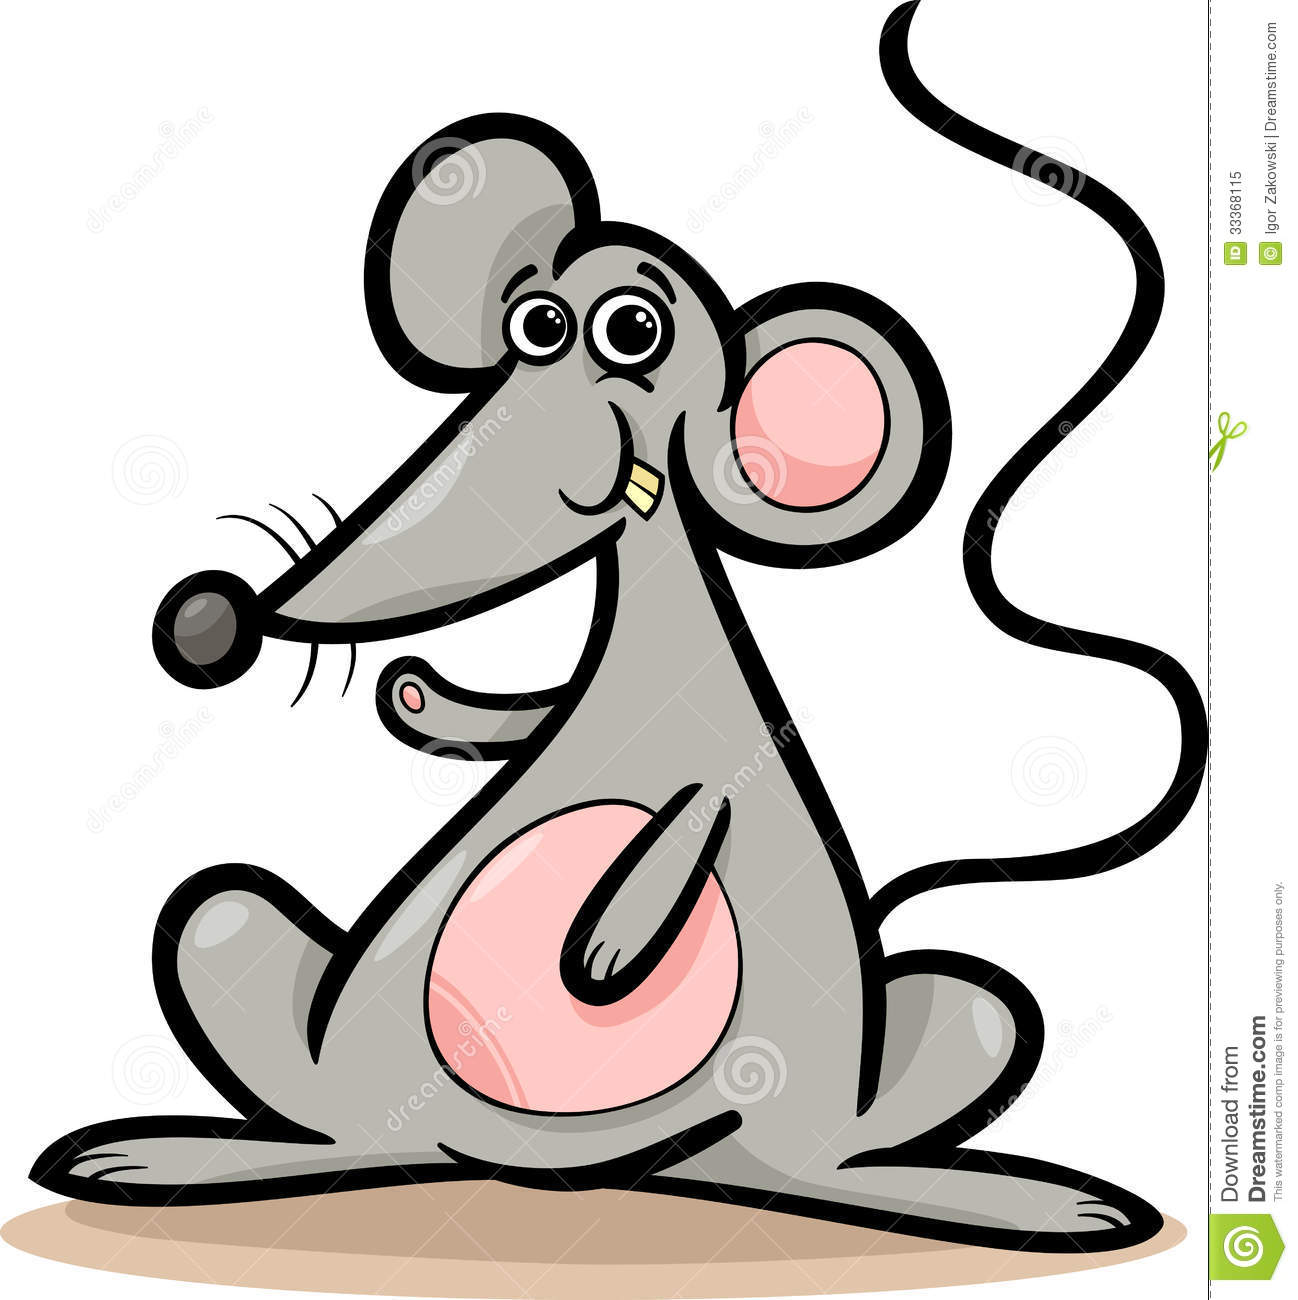 Rat clipart for kid #3